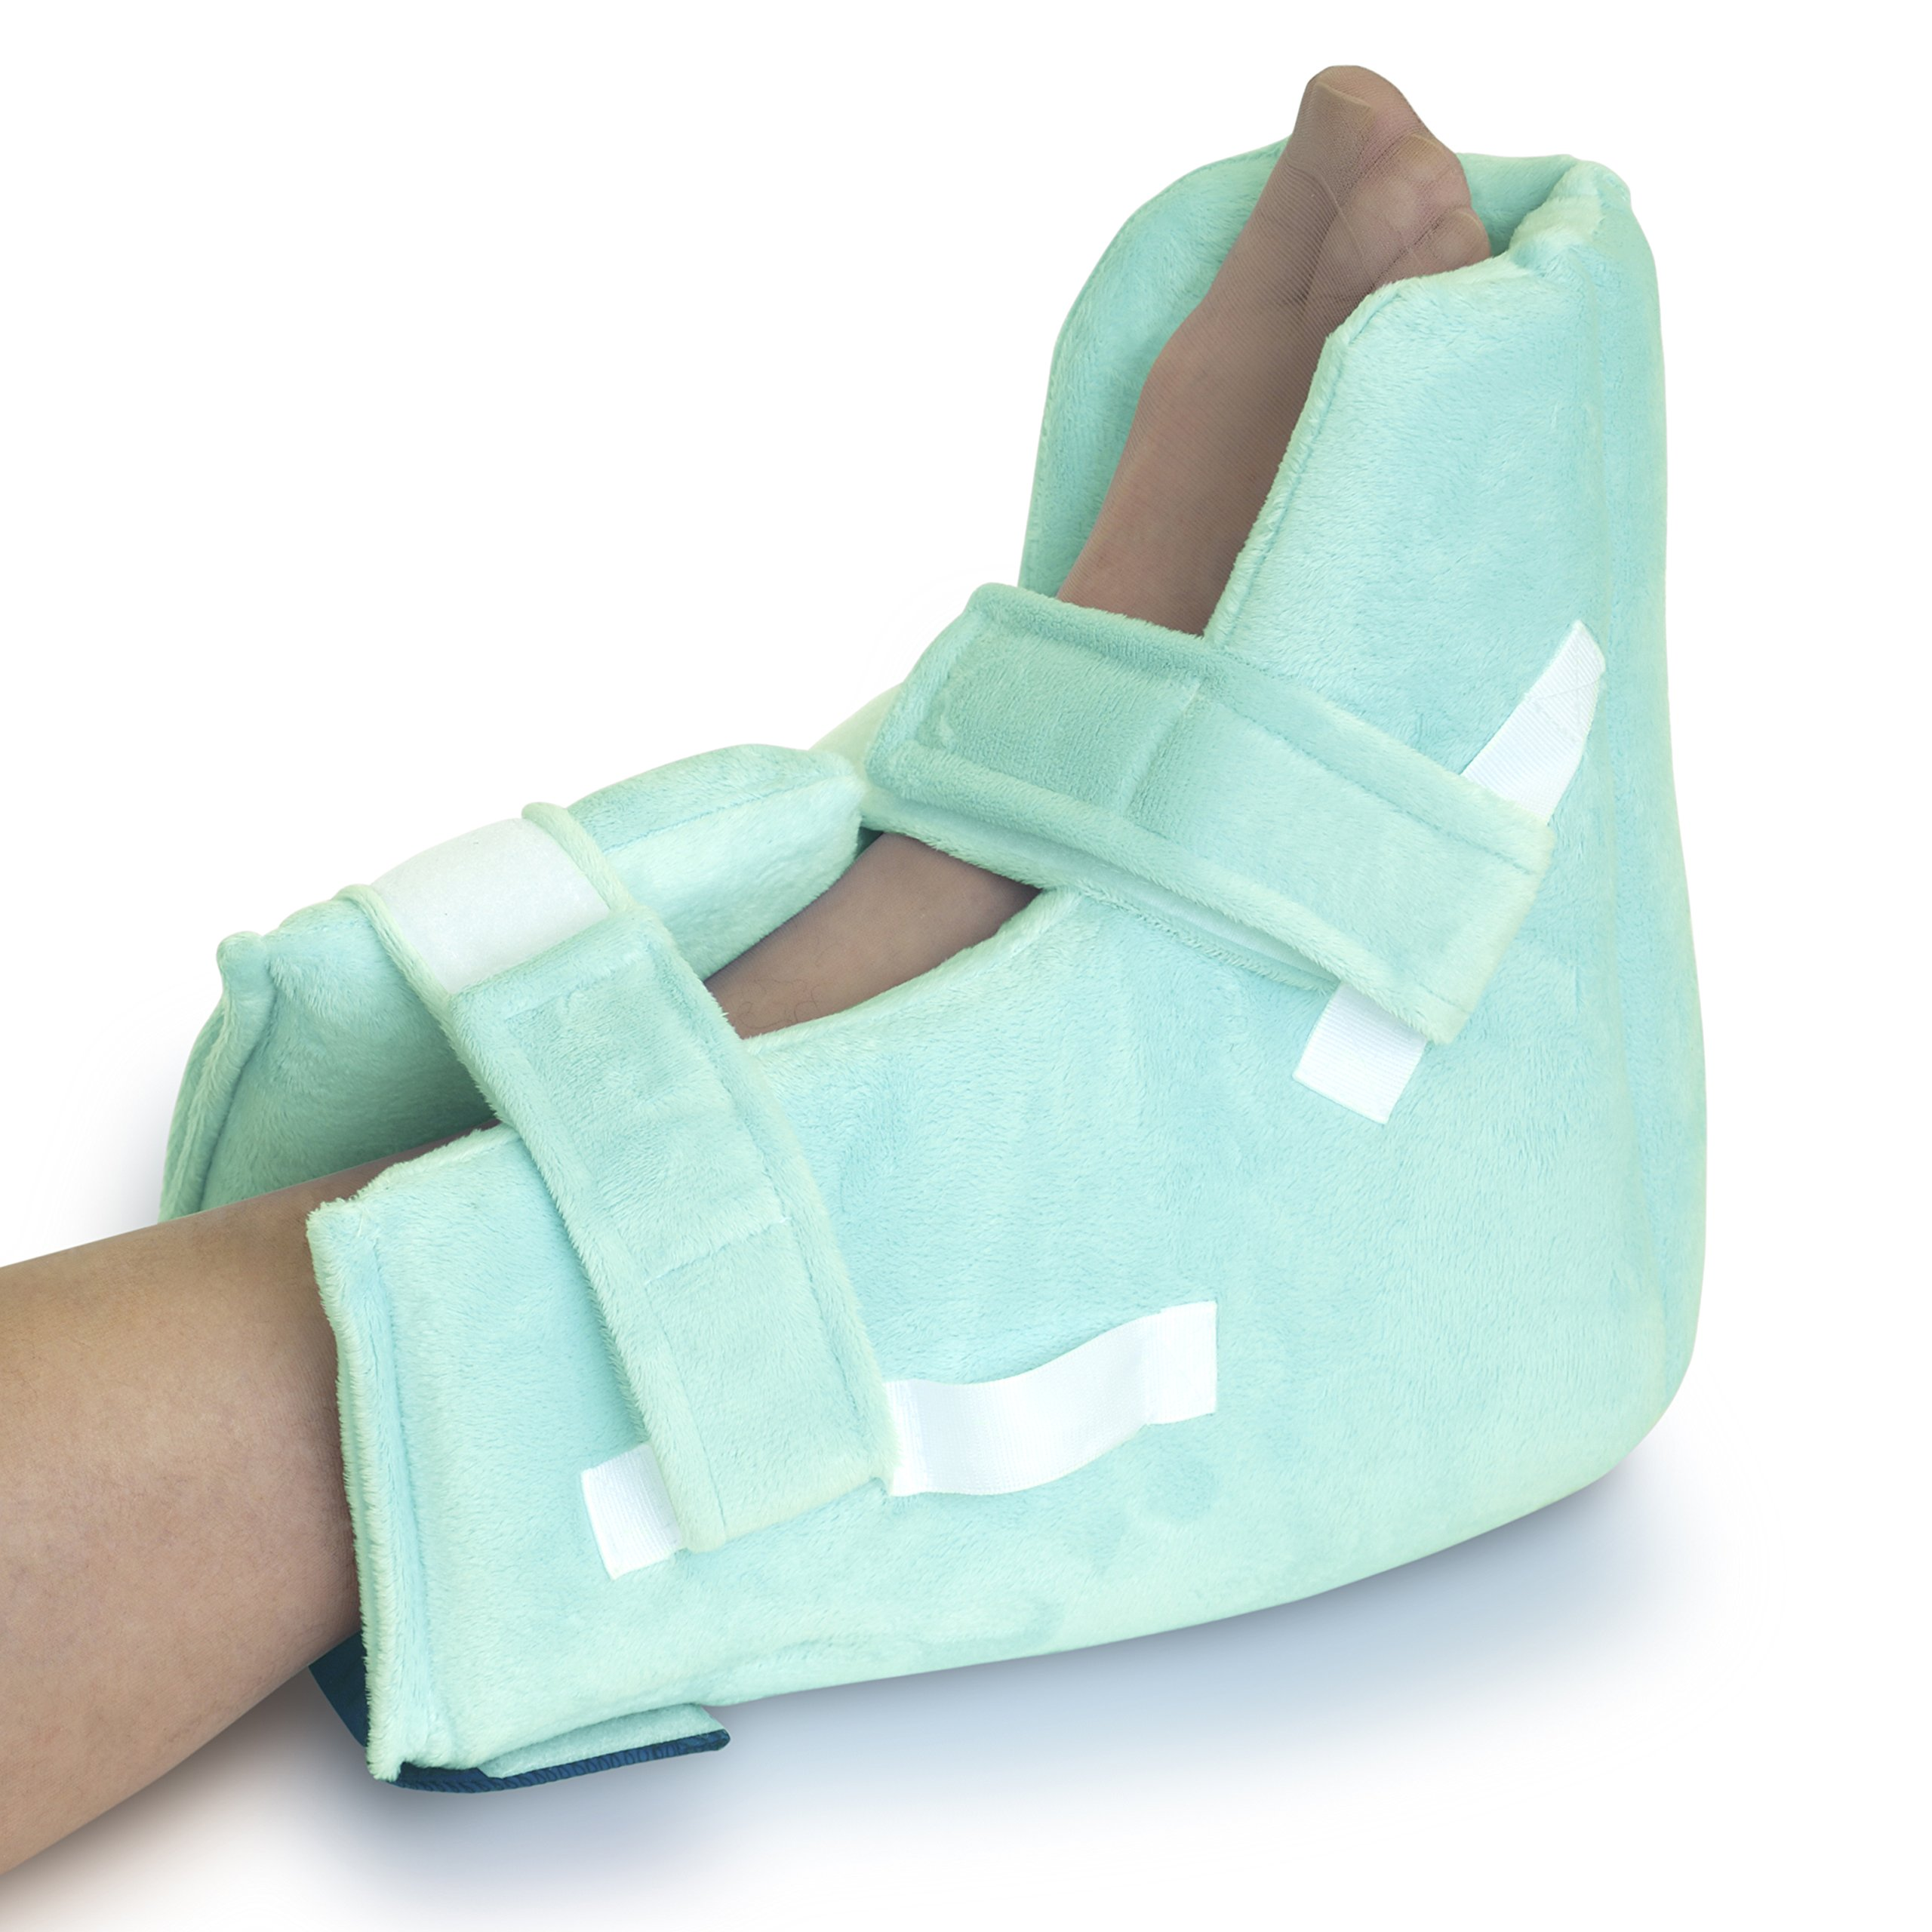 NYOrtho Boot Heel ProtectorCushion -Pressure Relieving Pillow Boots with Suspension Boot Antimicrobial Fabric Zero-G BootTM| Free Removable Heating/Cooling Gel Pack Included| Petite by NYORTHO